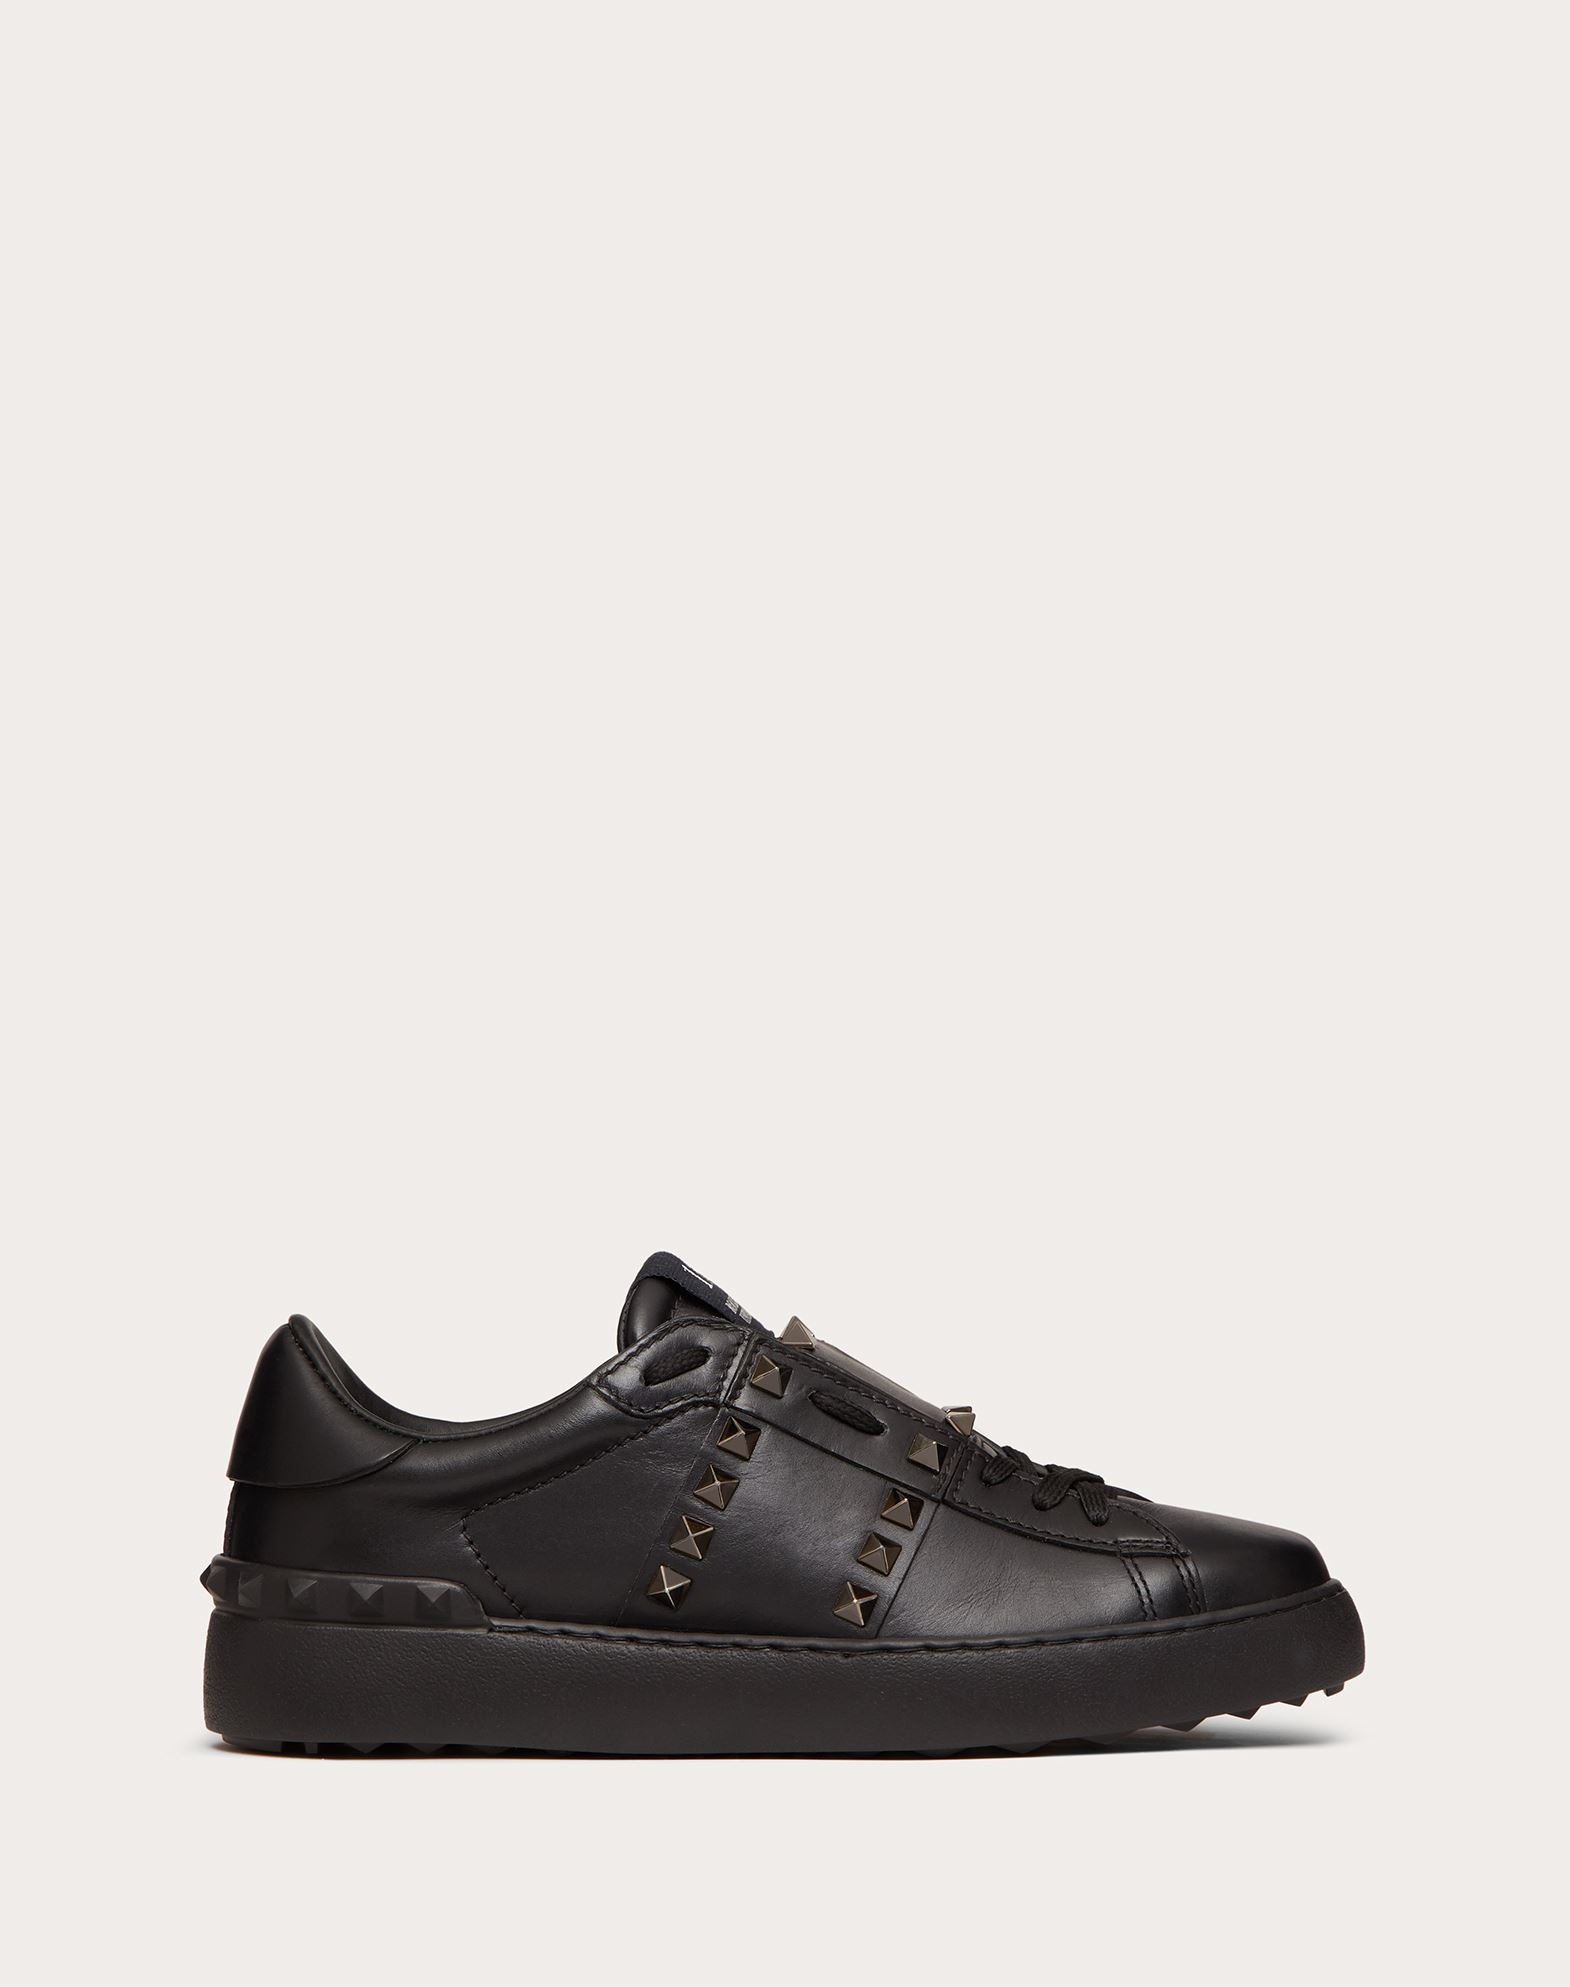 VALENTINO Contrasting applications Round toeline Laces Rubber sole  45351360tt